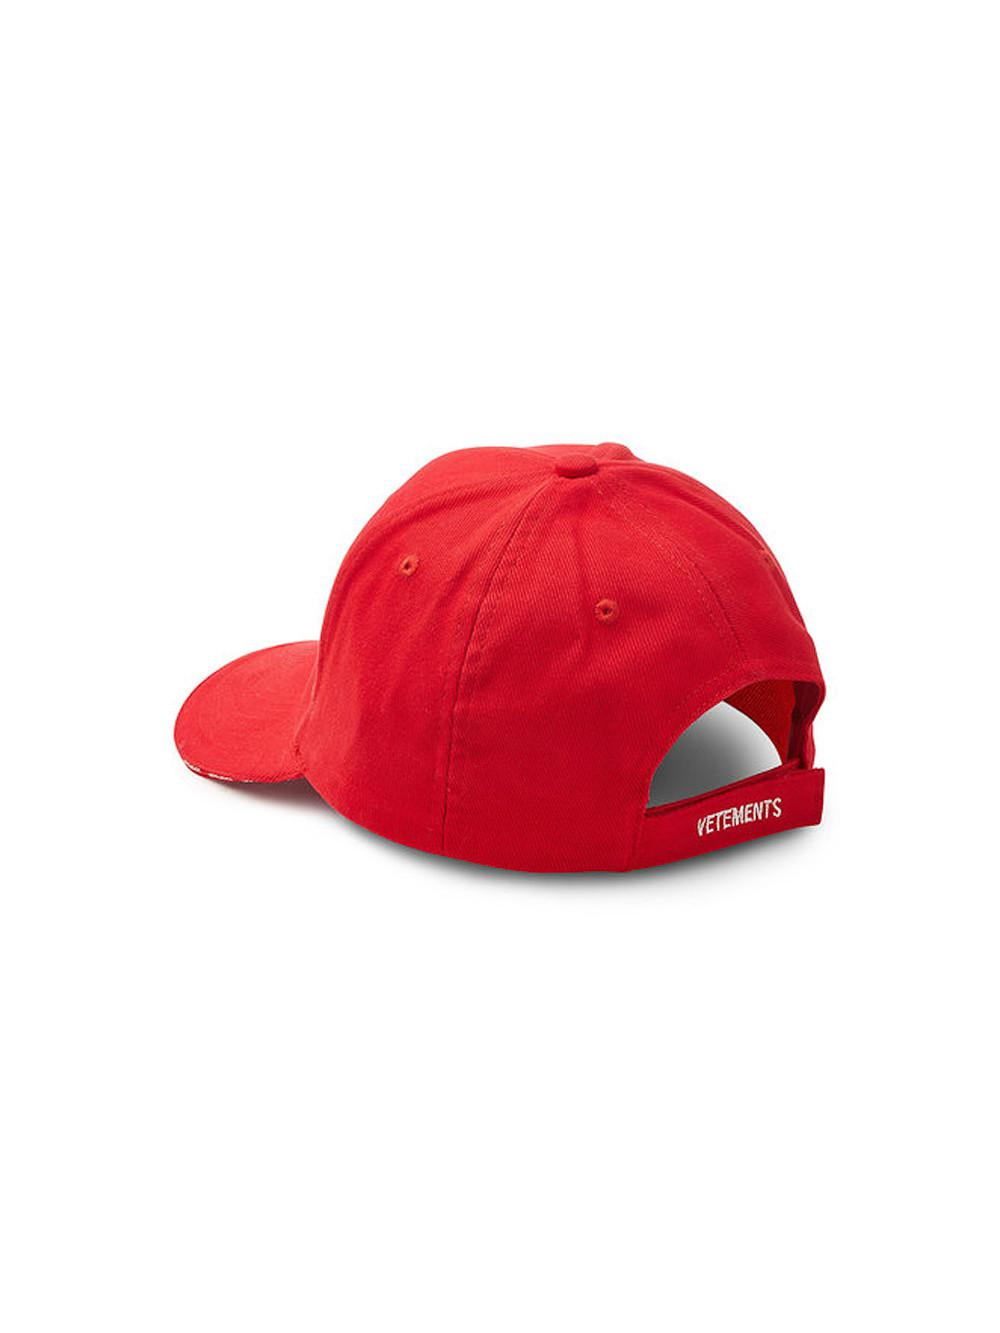 Vetements Haute Couture Cap in Red for Men - Save 63.55421686746988 ... 06f8ccdfece3